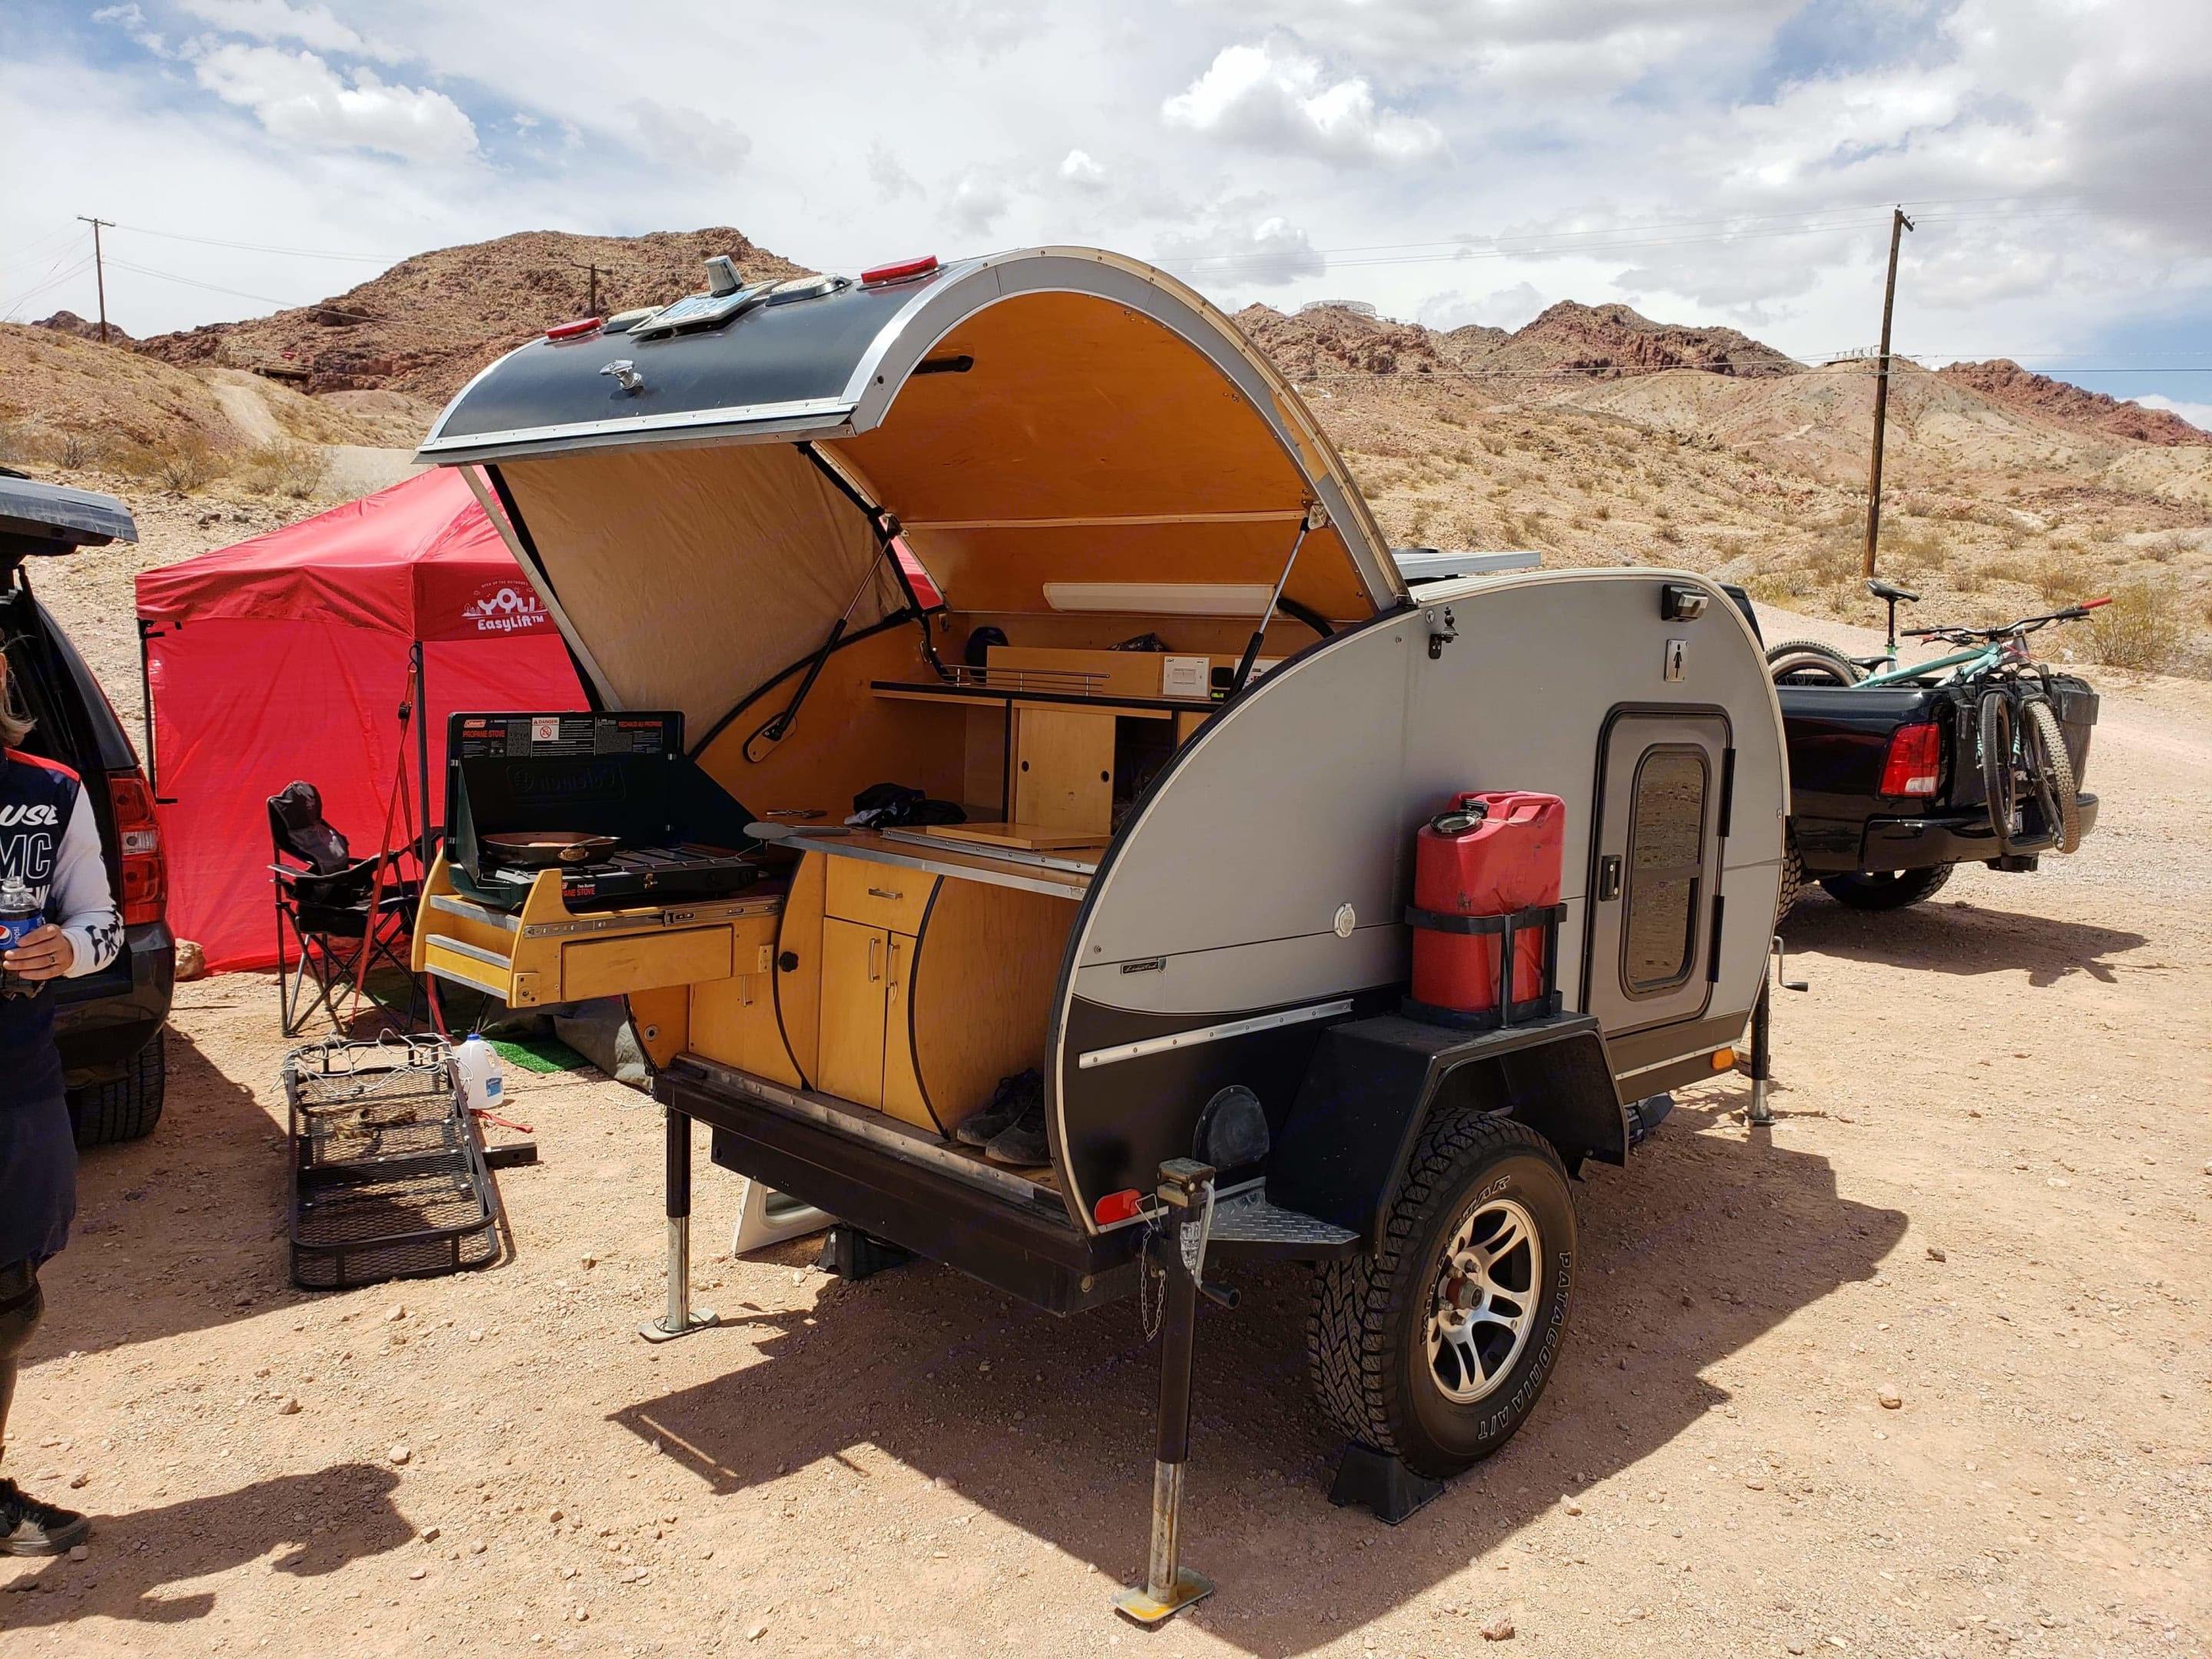 Equipped with either mini fridge or cooler depending on if you will have shore power or are dry camping/boondocking. Custom Teardrop Camper 2014